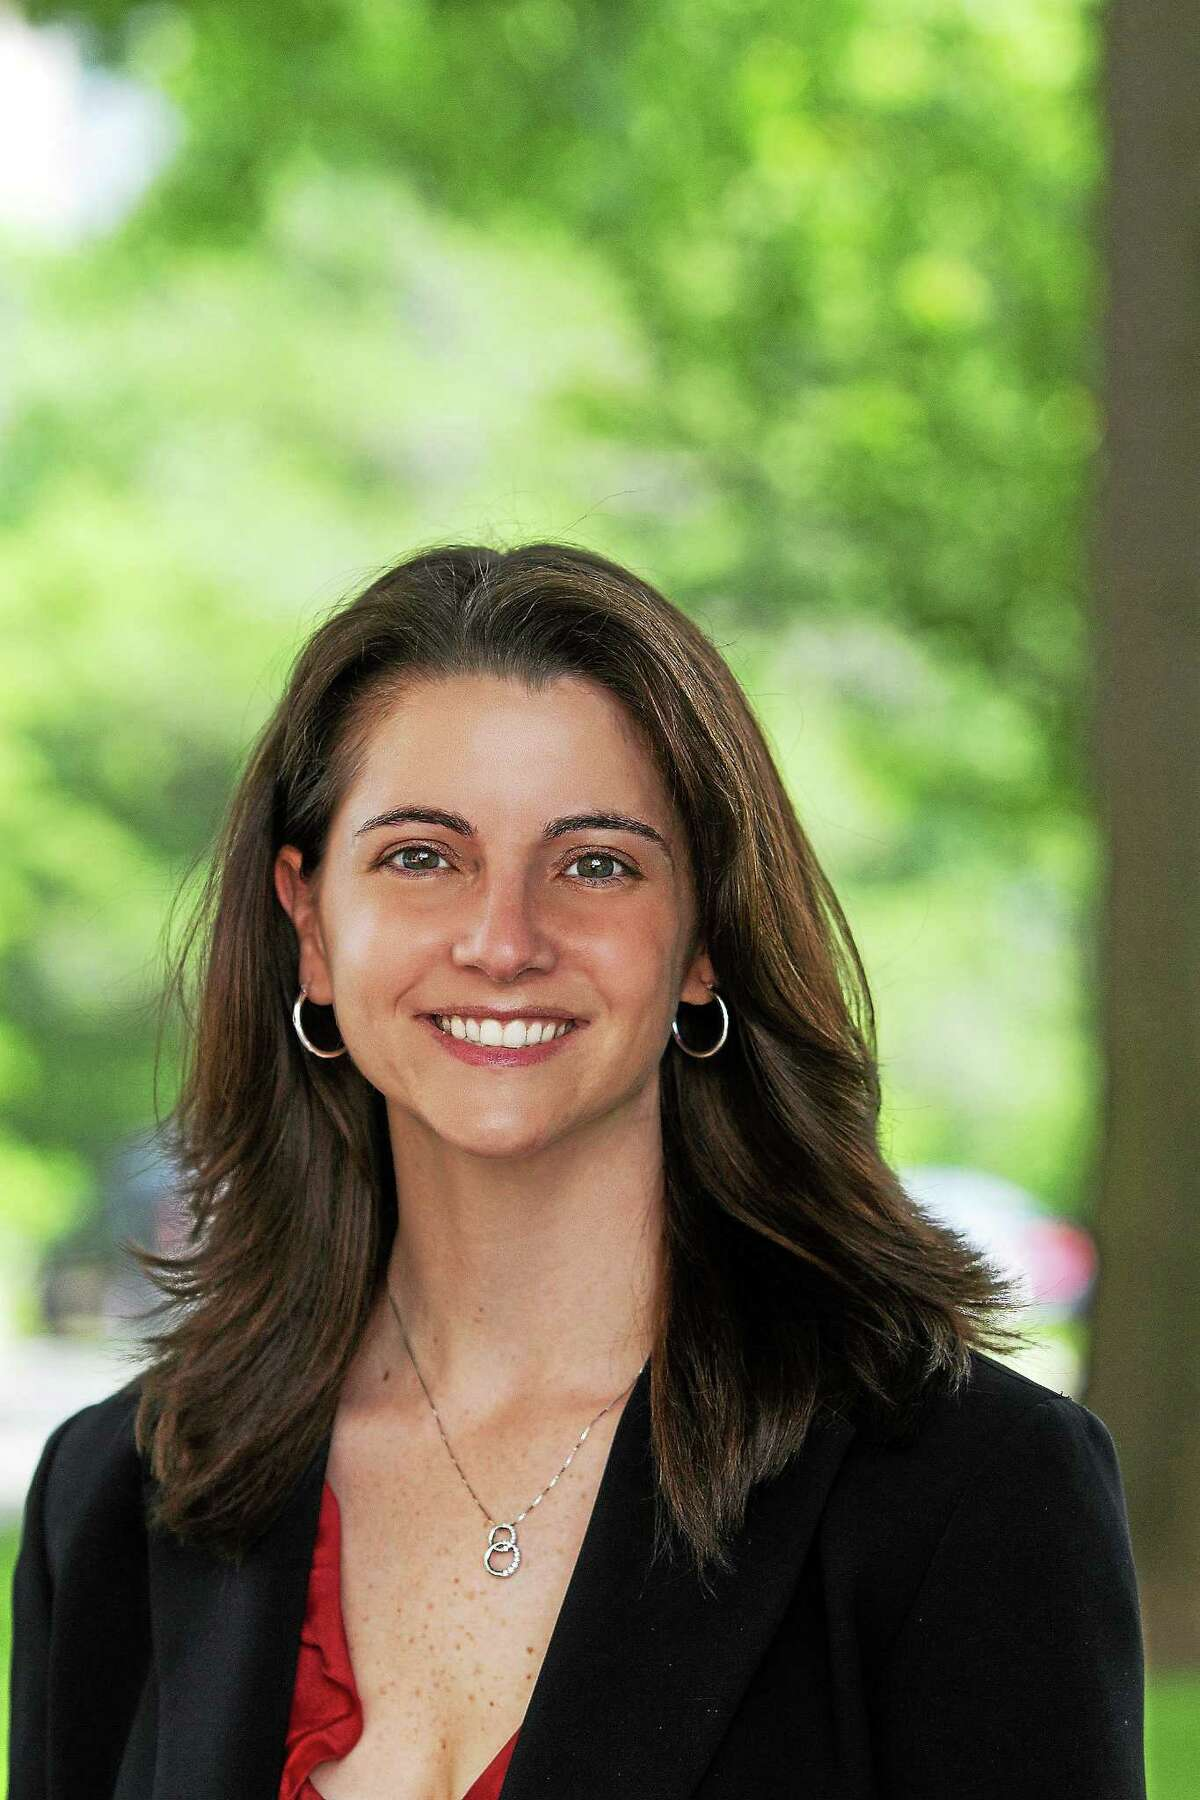 State Rep. Christie Carpino, R-32nd, Cromwell and Portland